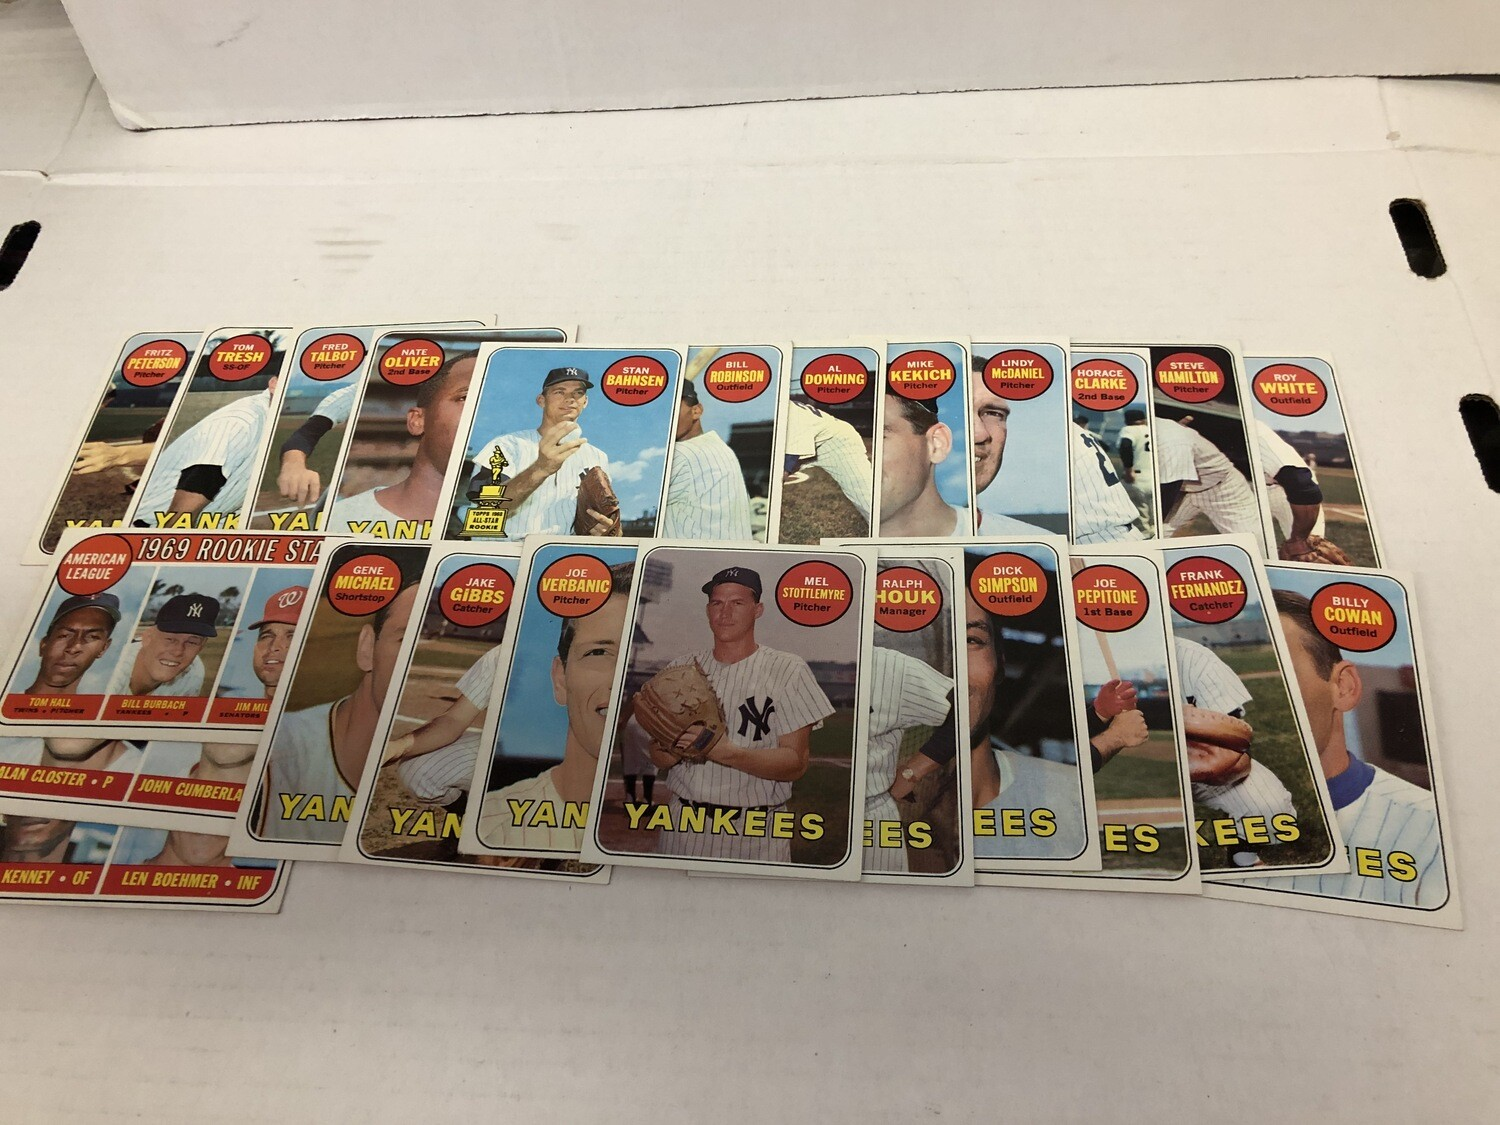 1969 Topps Yankees Team set 24 cards No Mantle, Cox,Murcer